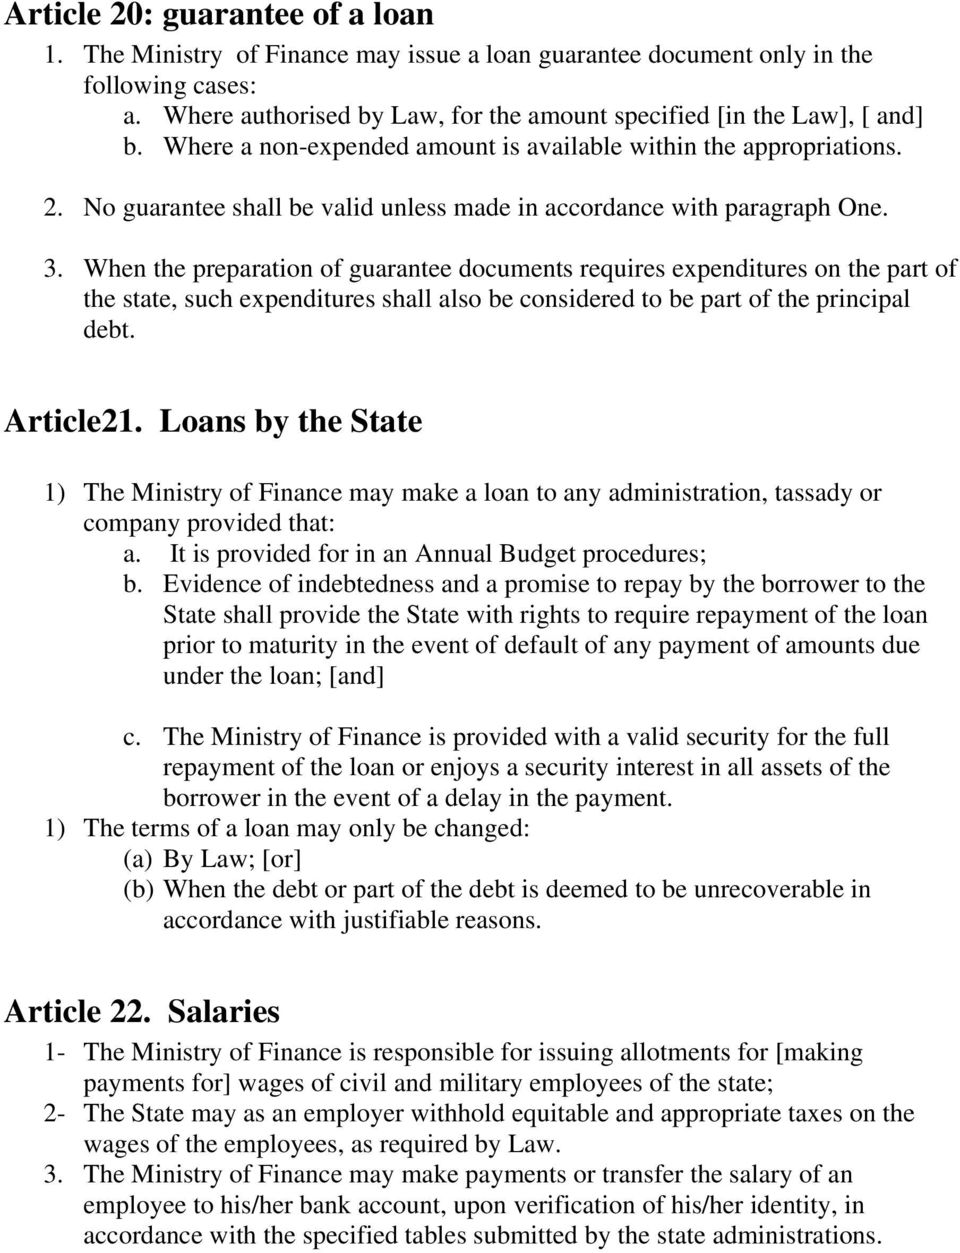 When the preparation of guarantee documents requires expenditures on the part of the state, such expenditures shall also be considered to be part of the principal debt. Article21.